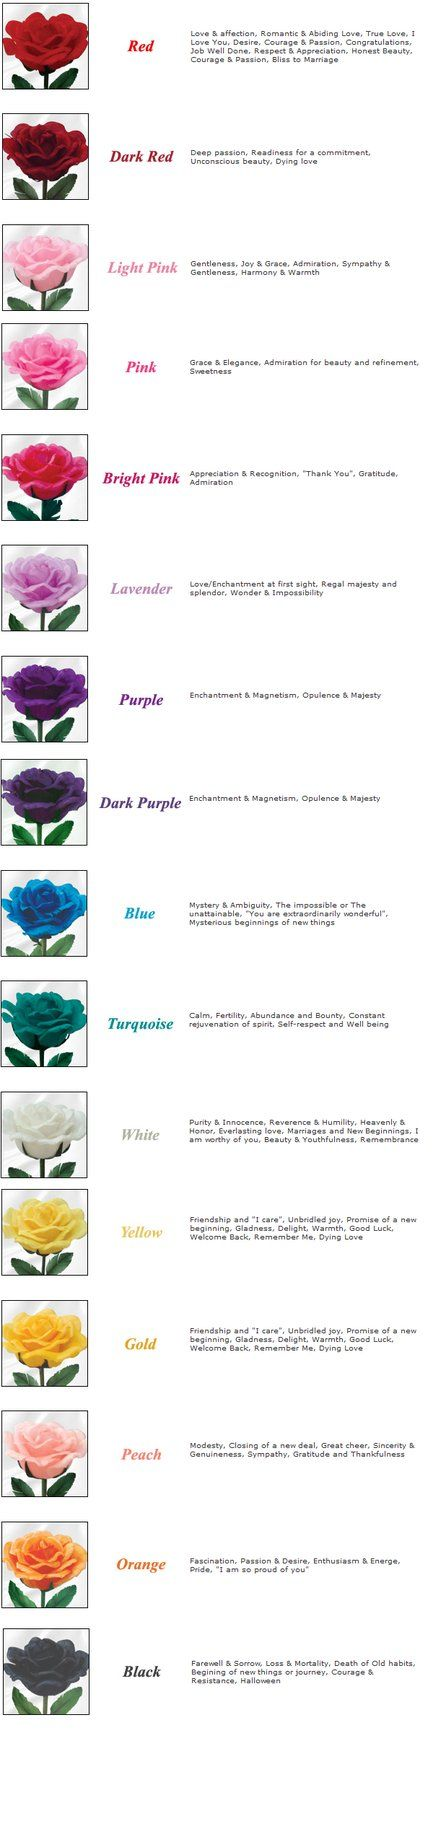 Meaning Of Color Of Roses Rose Color Meanings Color Meanings Flower Meanings